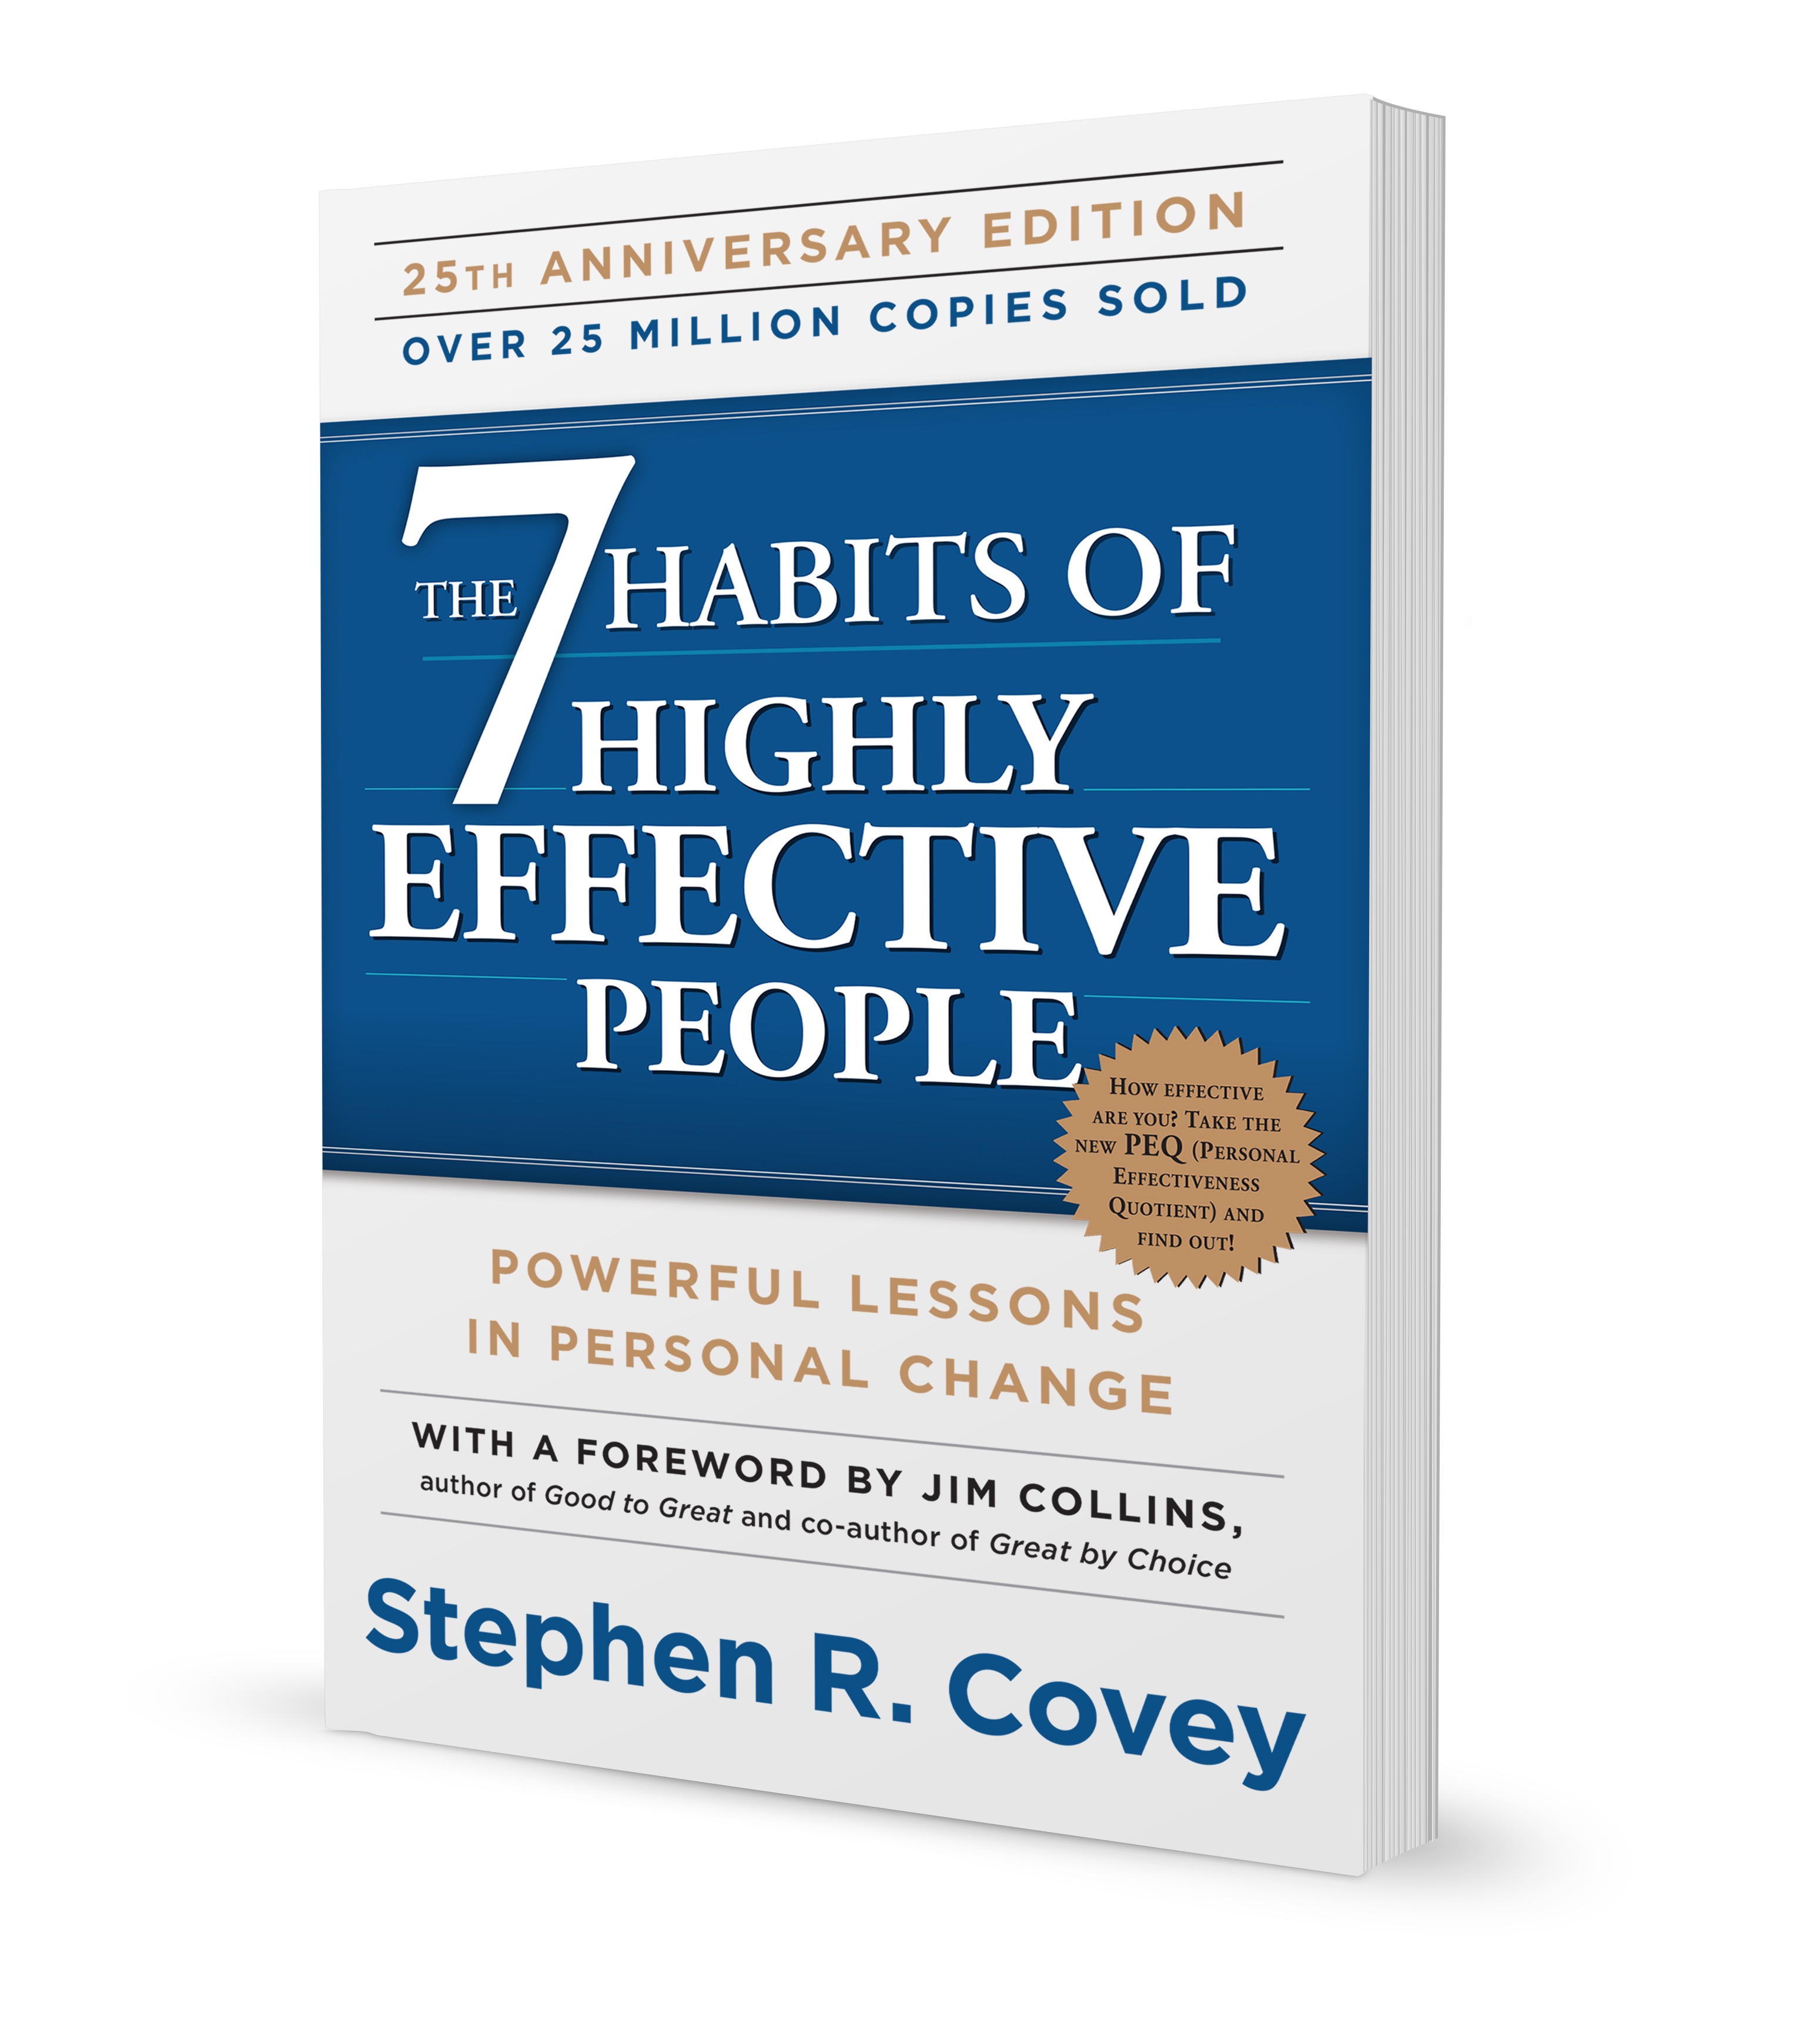 The 7 Habits Of Highly Effective People 25th Anniversary